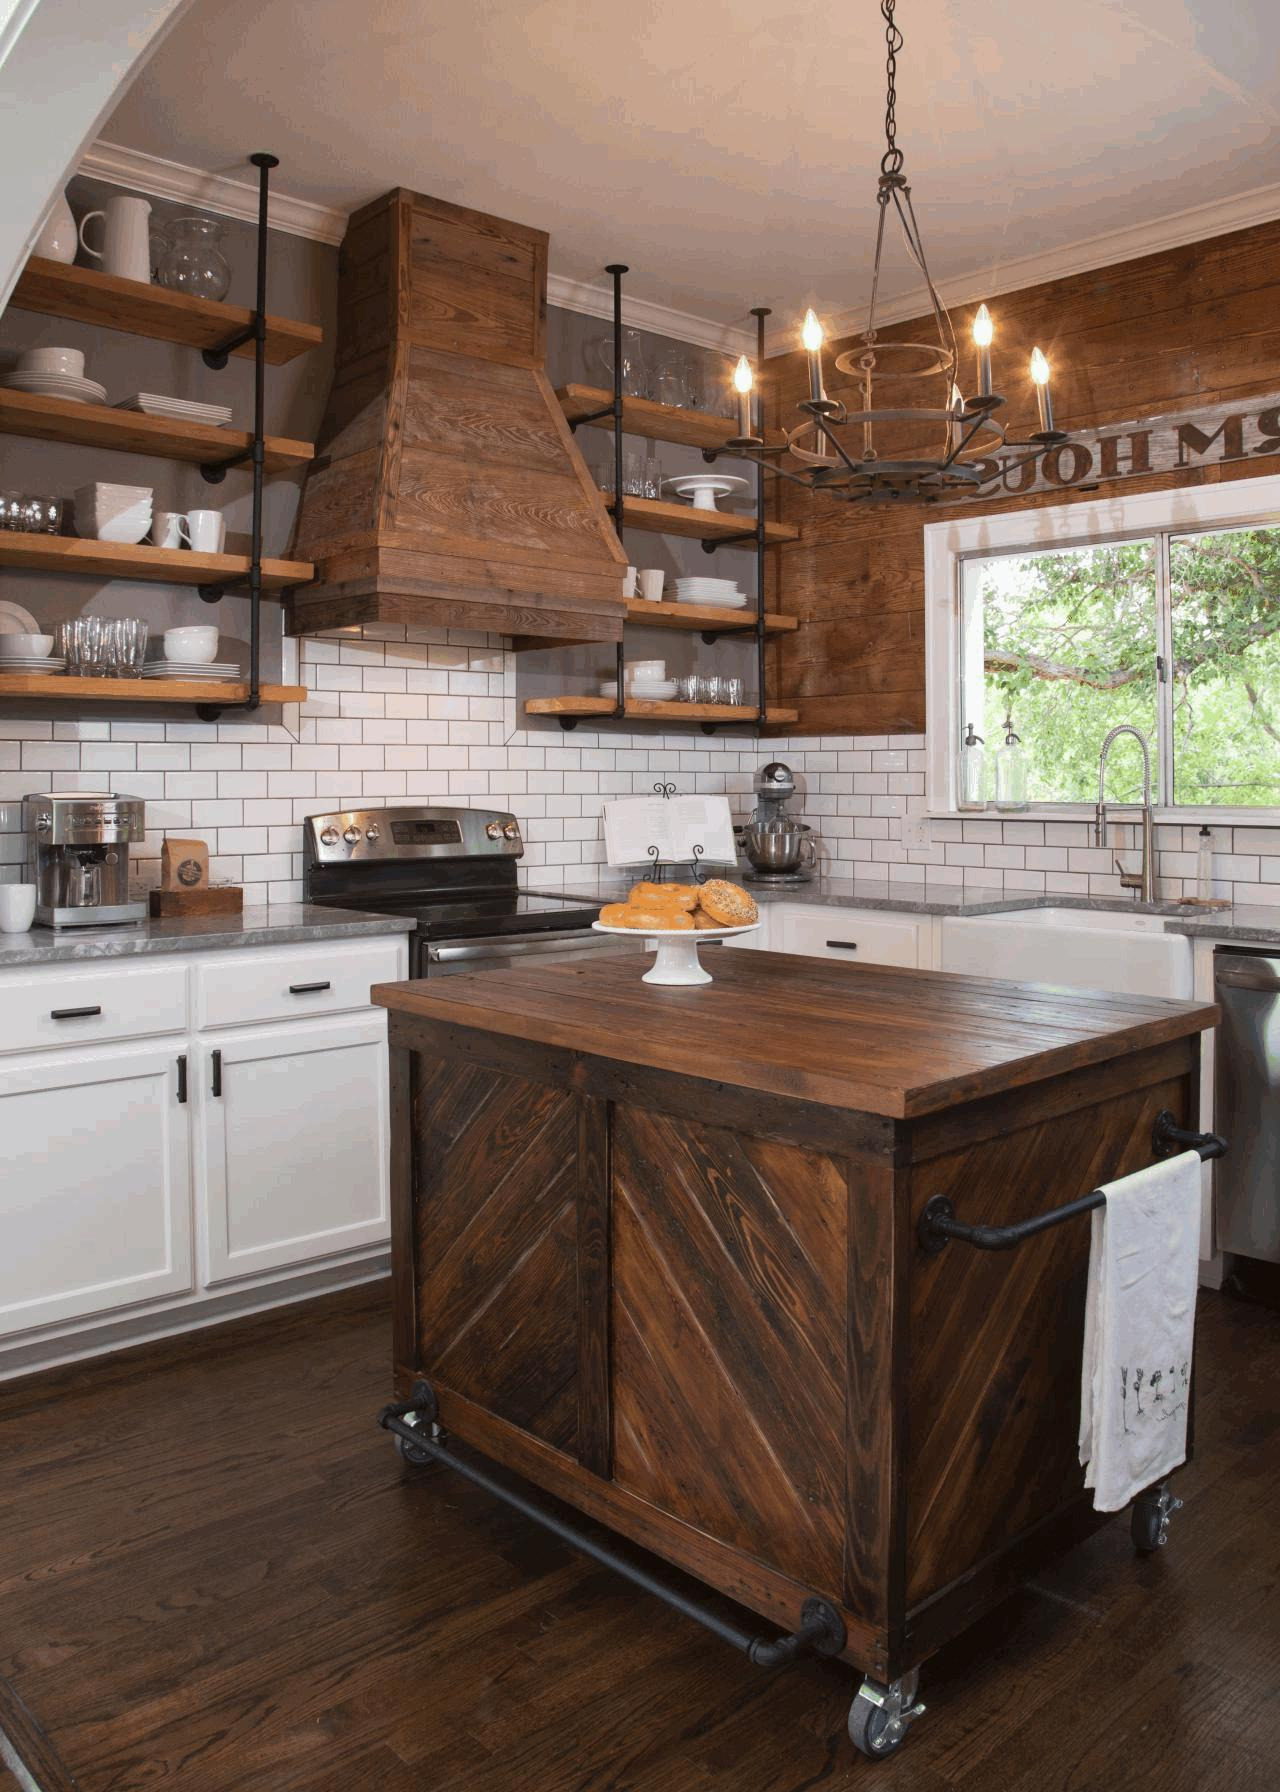 Open Kitchen Cabinets No Doors Lovely Open Kitchen Cabinets No Doors Interior Decorating and